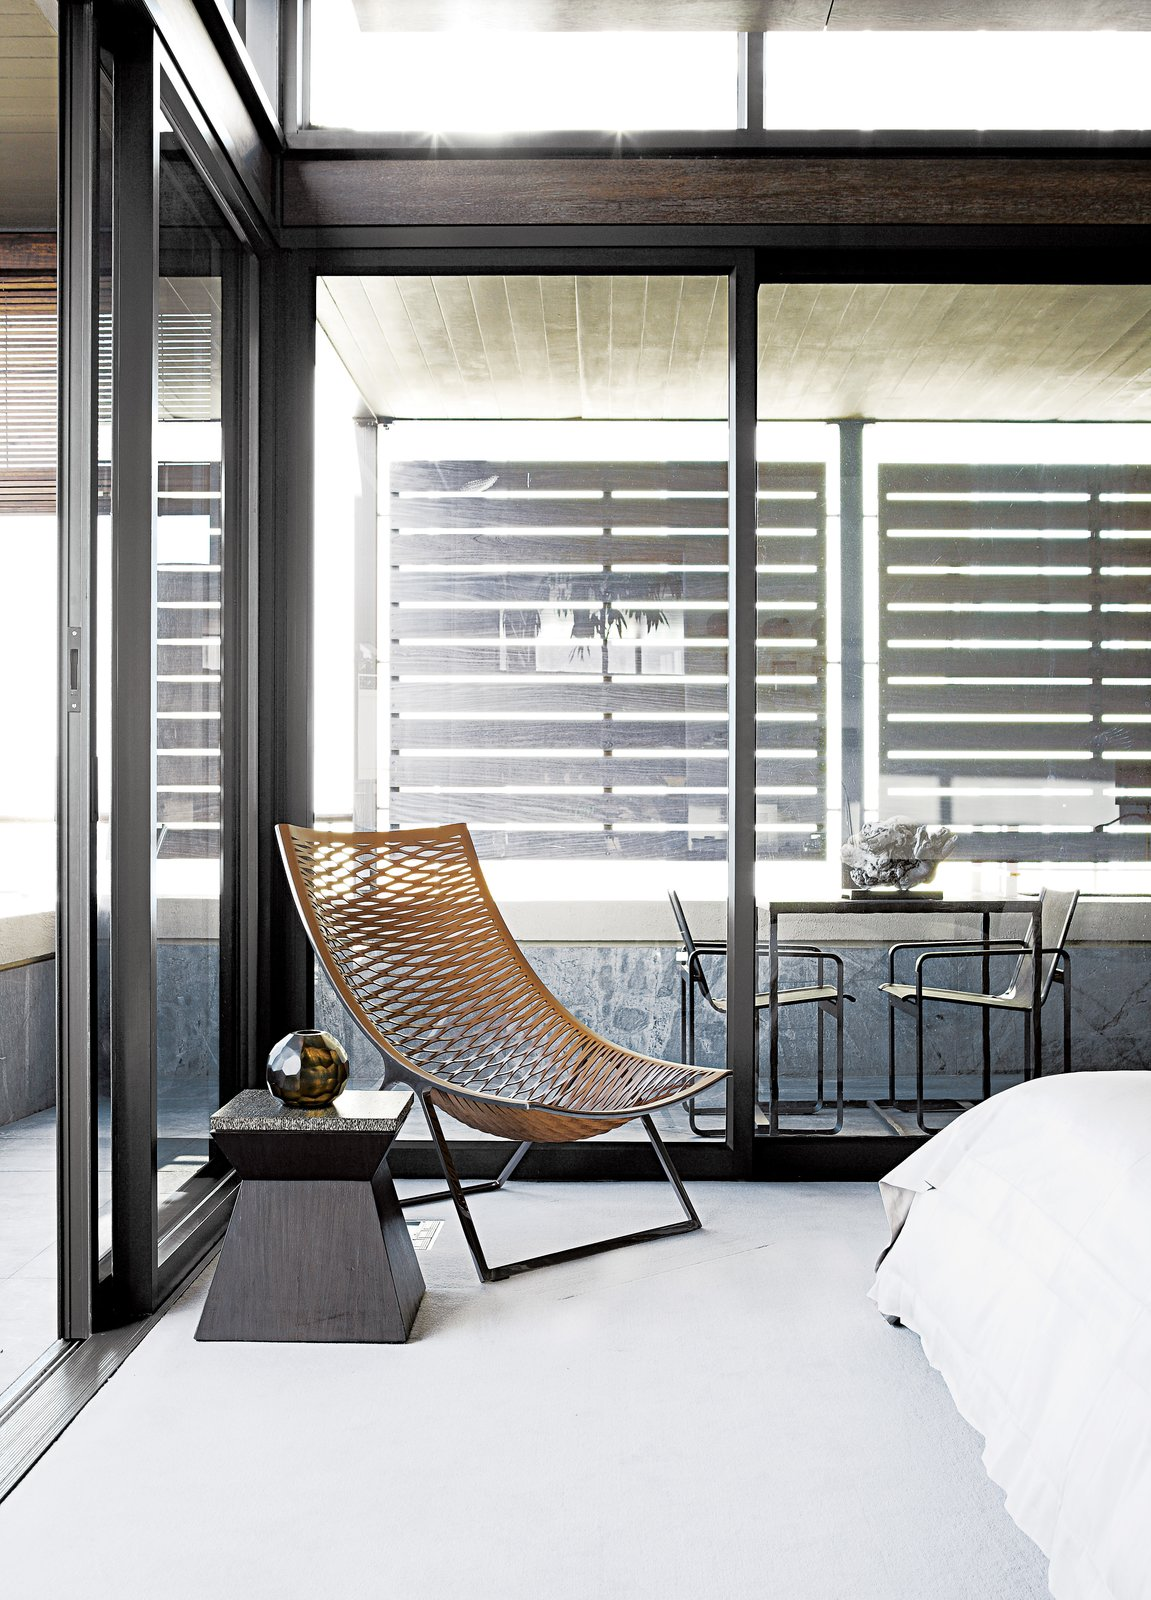 "In the master bedroom, a woven Loom chair by Matteograssi is paired with a wood-and-marble side table from Cécile & Boyd's. Sliding glass doors lead to the screened outdoor veranda with a custom bronze table and Neutra Batyline chairs from Marlanteak. ""The outside-inside flow was important to us, as the apartment is all about views and using the veranda spaces,"" says designer Geordi De Sousa Costa.  Bedrooms by Dwell from A Sophisticated Penthouse in Cape Town"